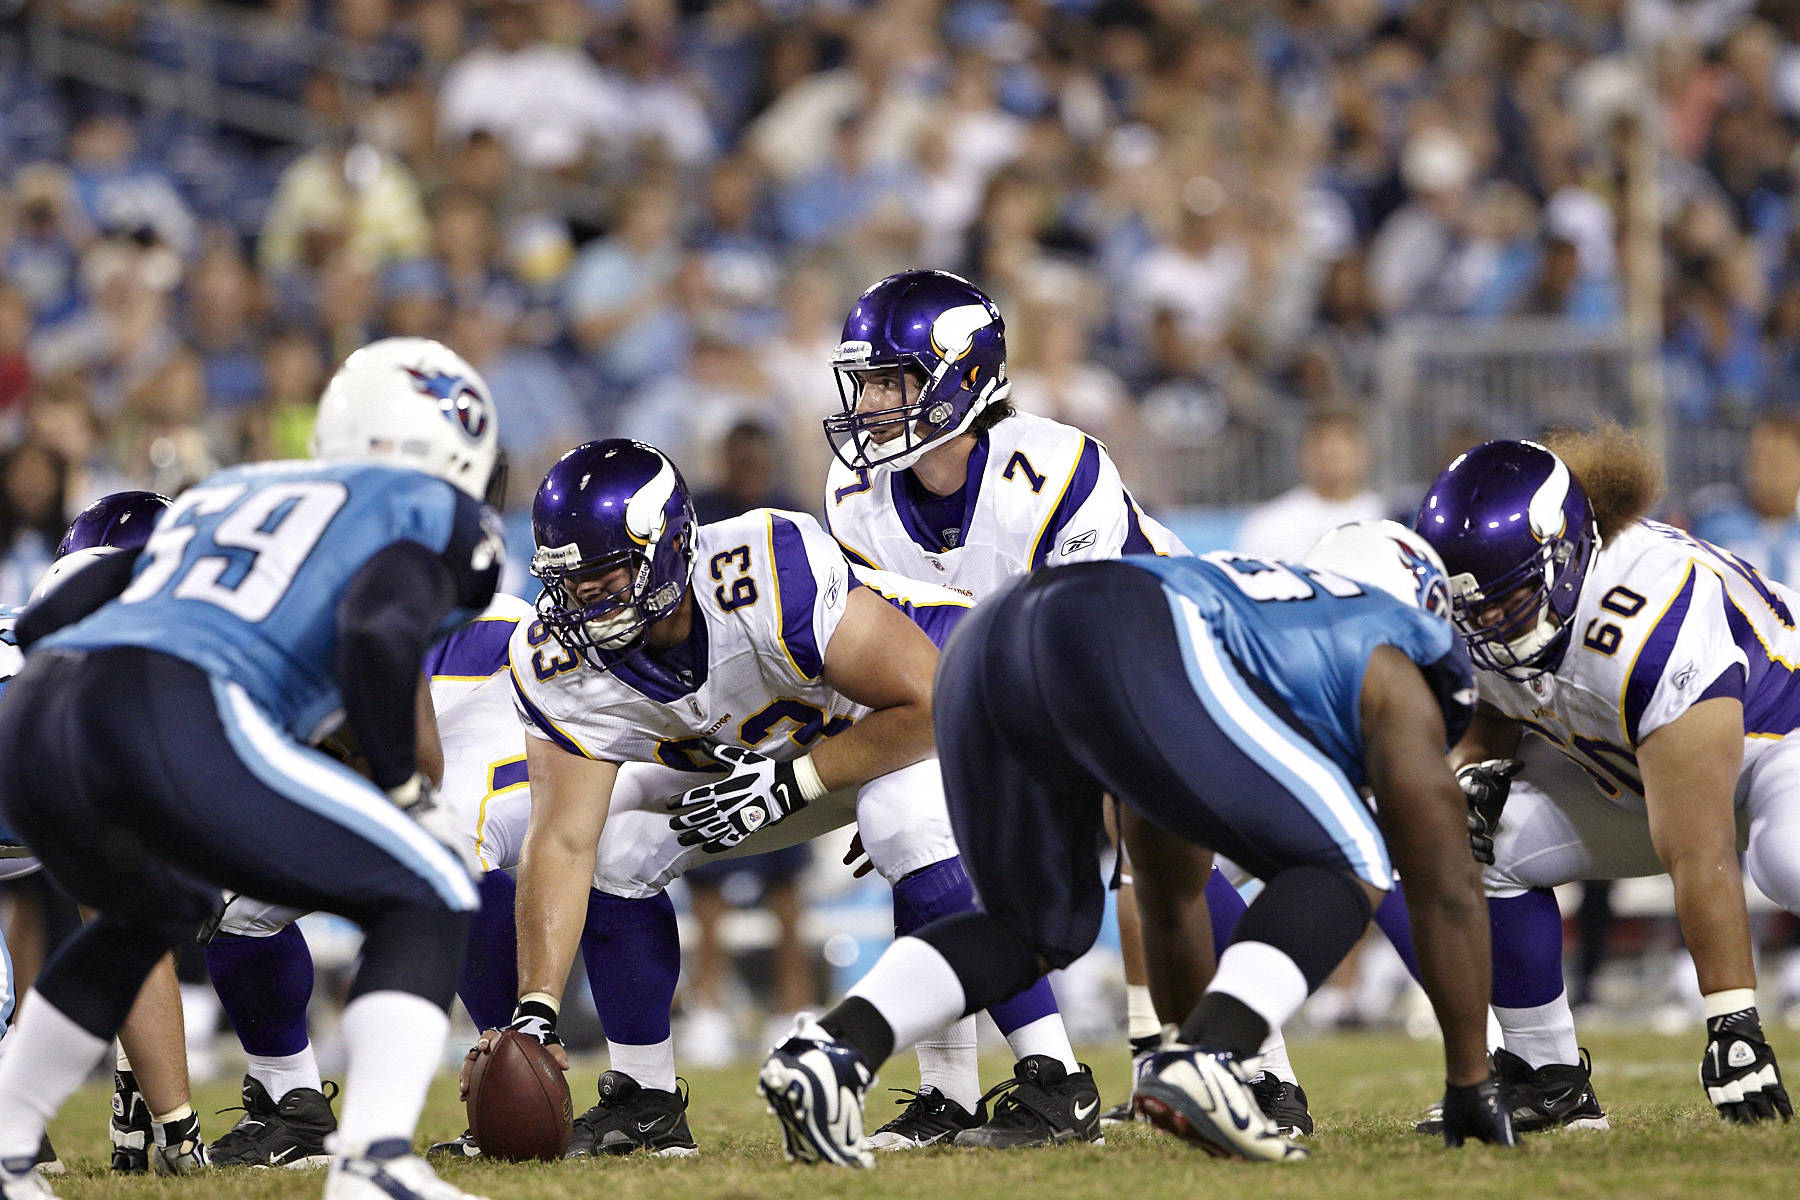 Nashville, TN - August 13, 2011: Preseason Game, Minnesota Vikings vs the Tennessee Titans at LP Field in Nashville, TN on Saturday, August 13, 2011. (Photo by Minnesota Vikings-Steve Smith Photography)